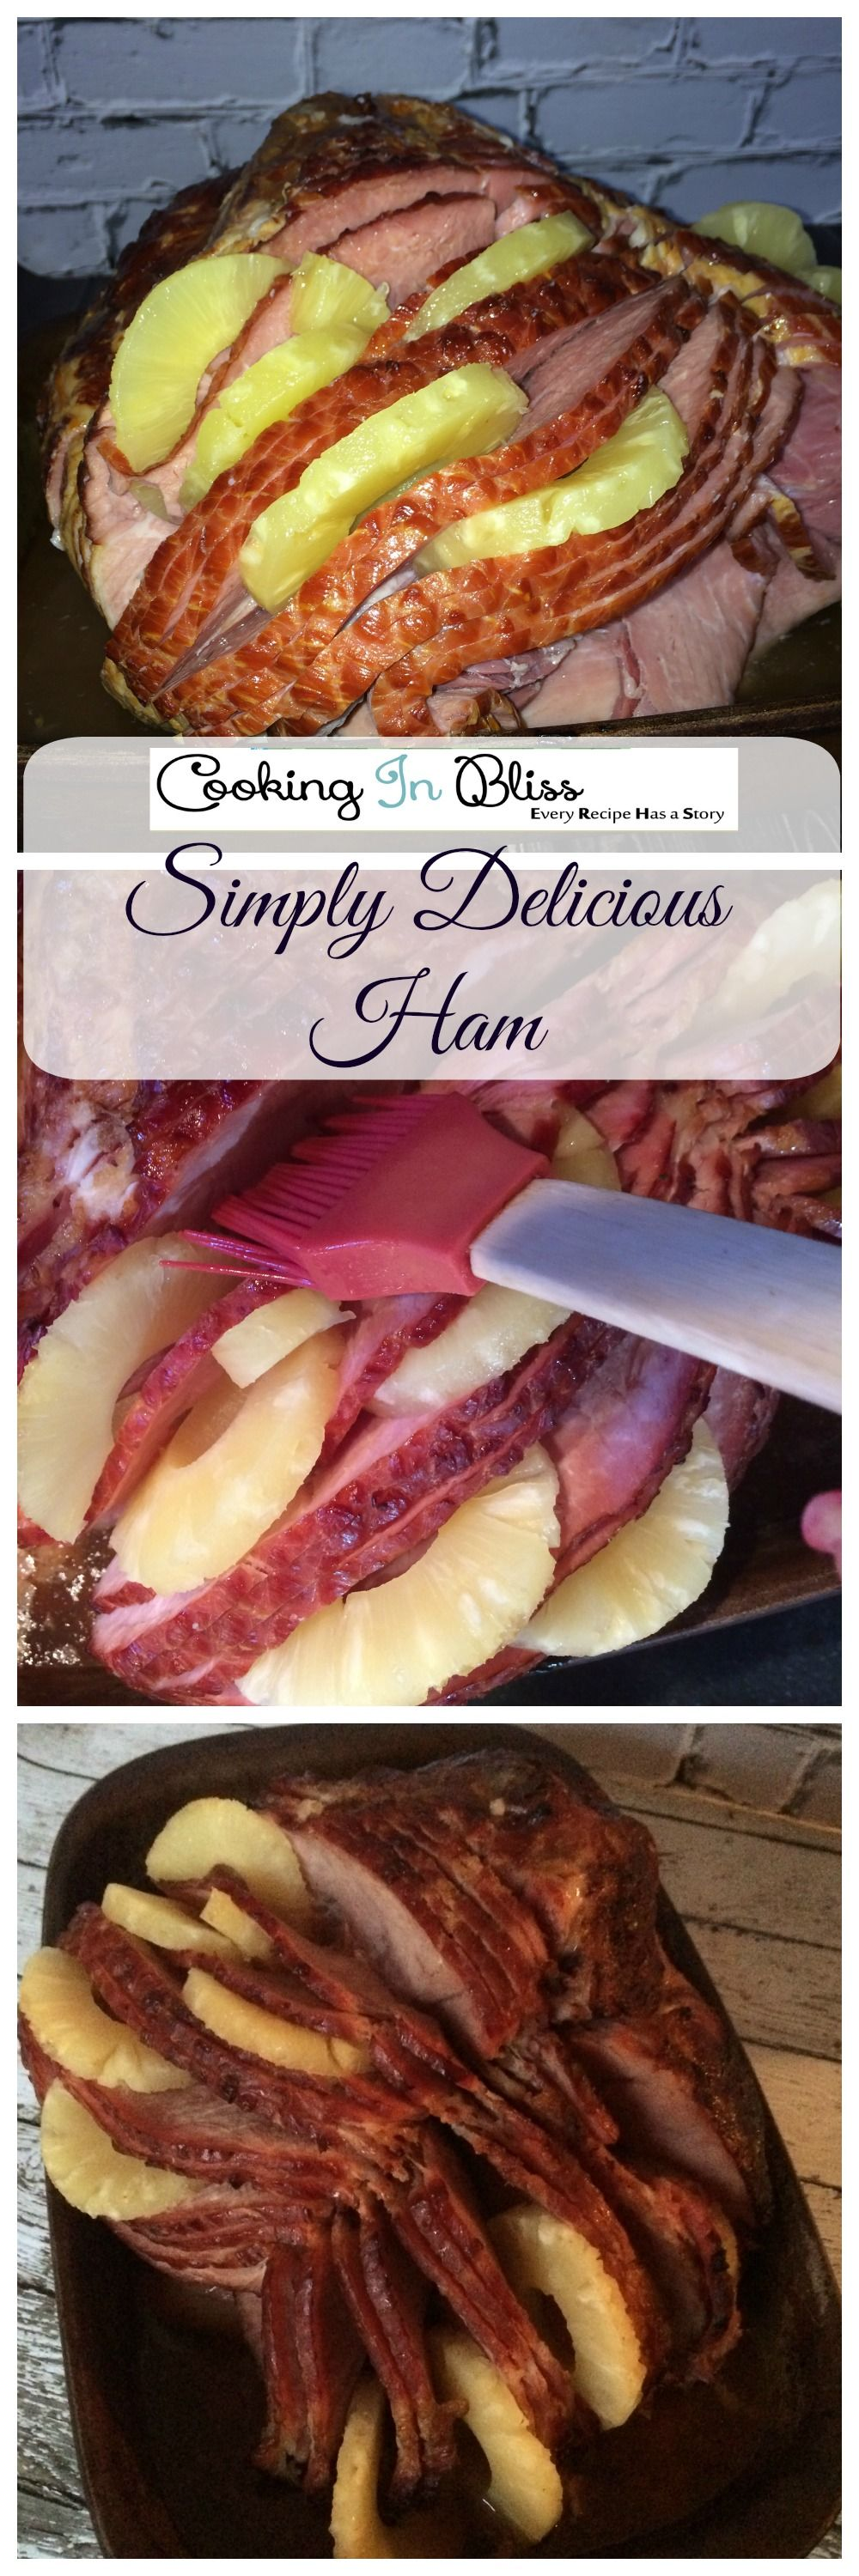 Easy to make mouthwatering Baked HAM. This recipe is super delicious and looks great